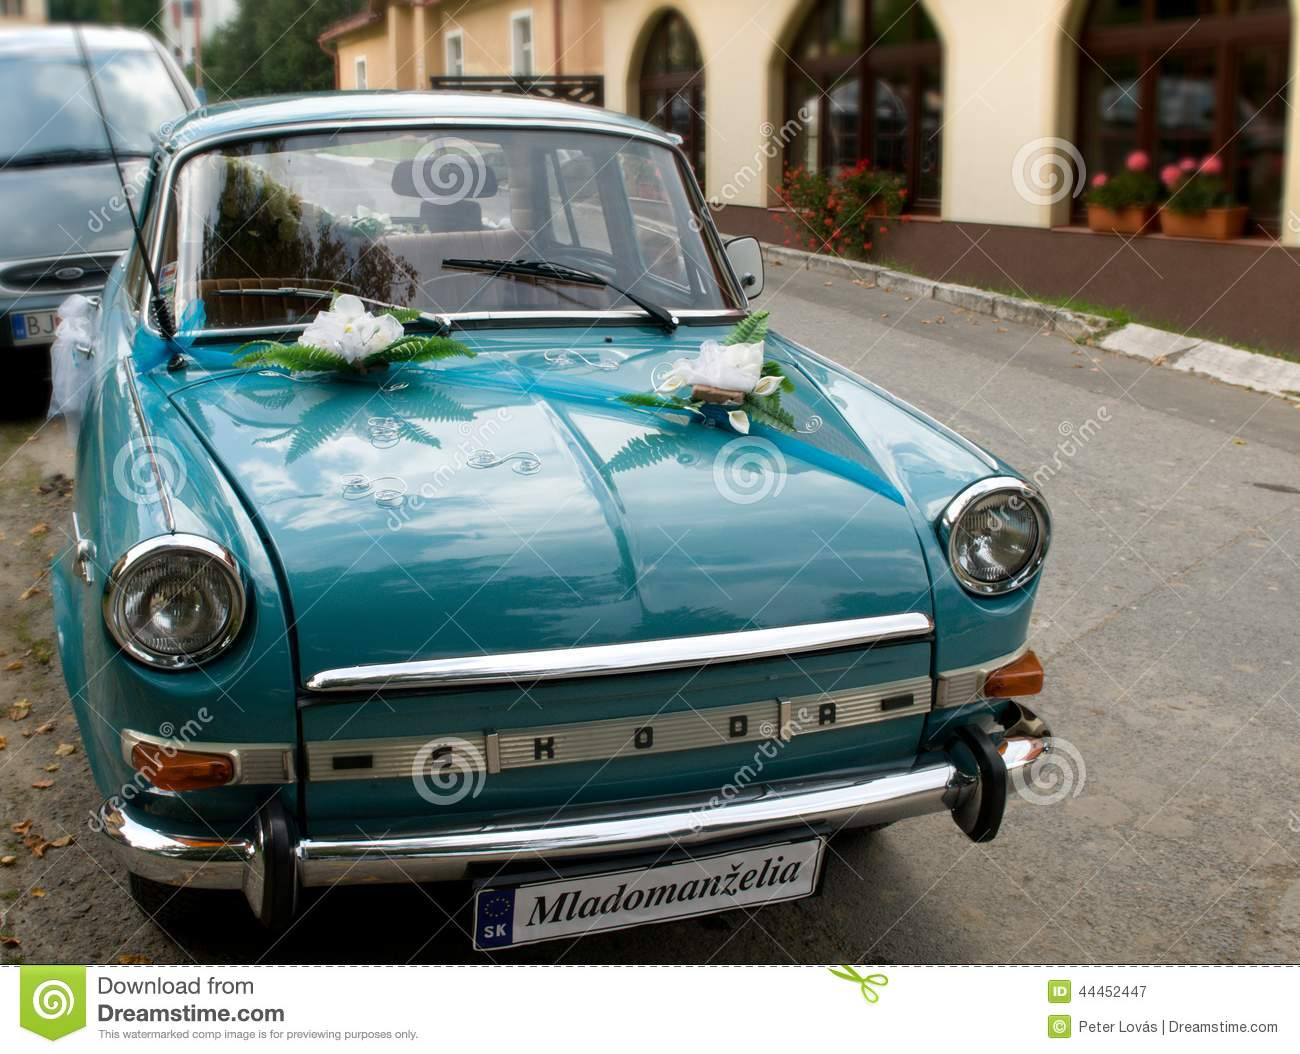 Vintage Wedding Car Decorated Flowers Stock Photos - 339 Images